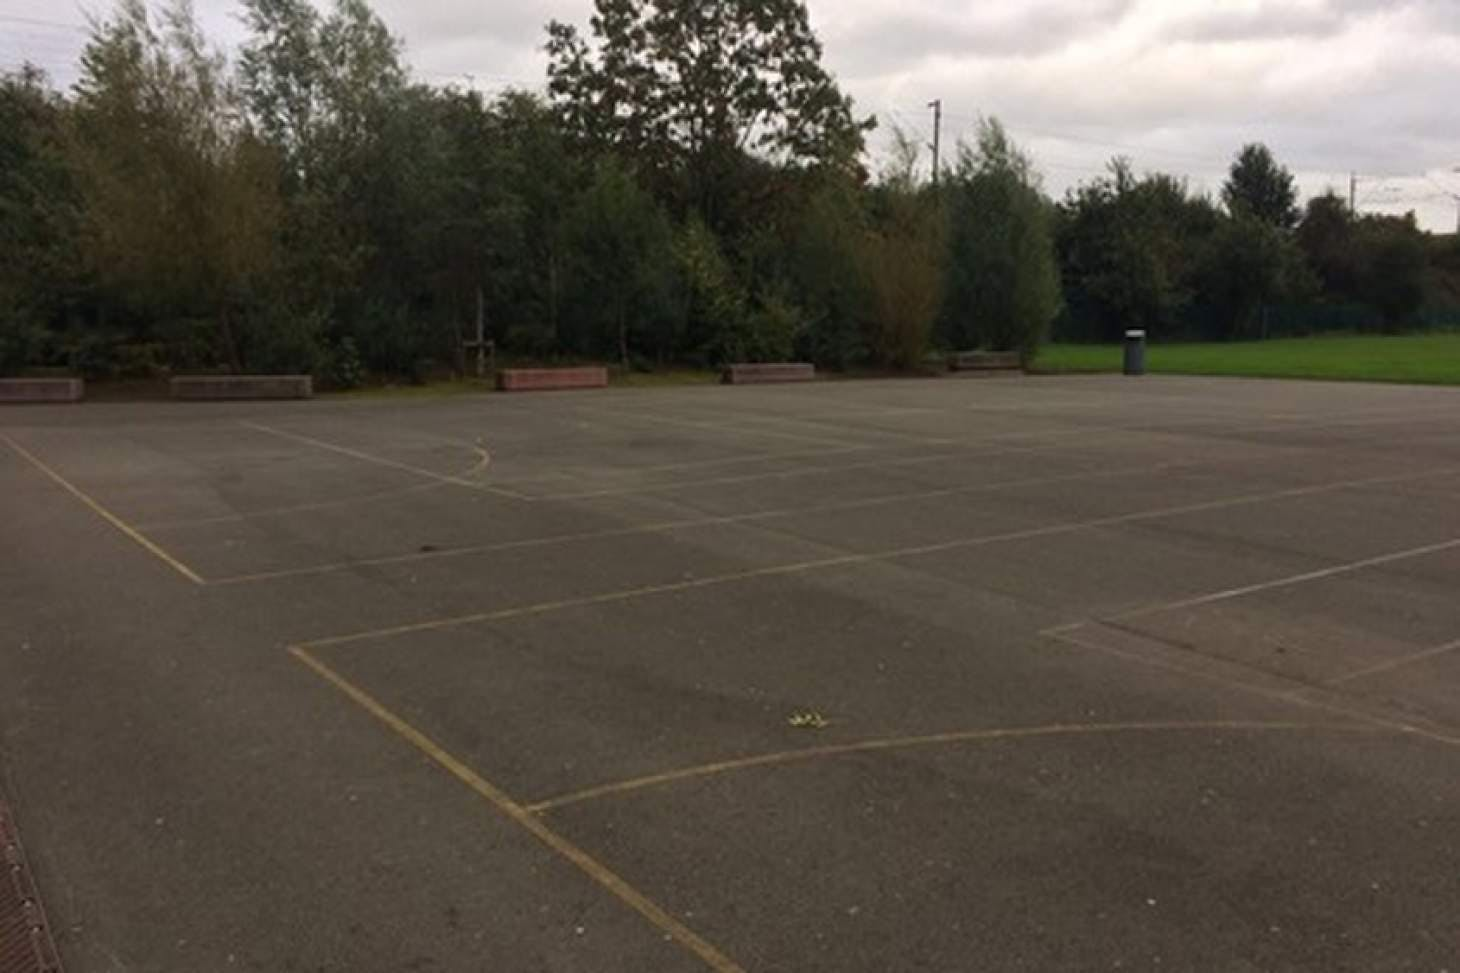 The Barlow RC High School Outdoor | Concrete netball court